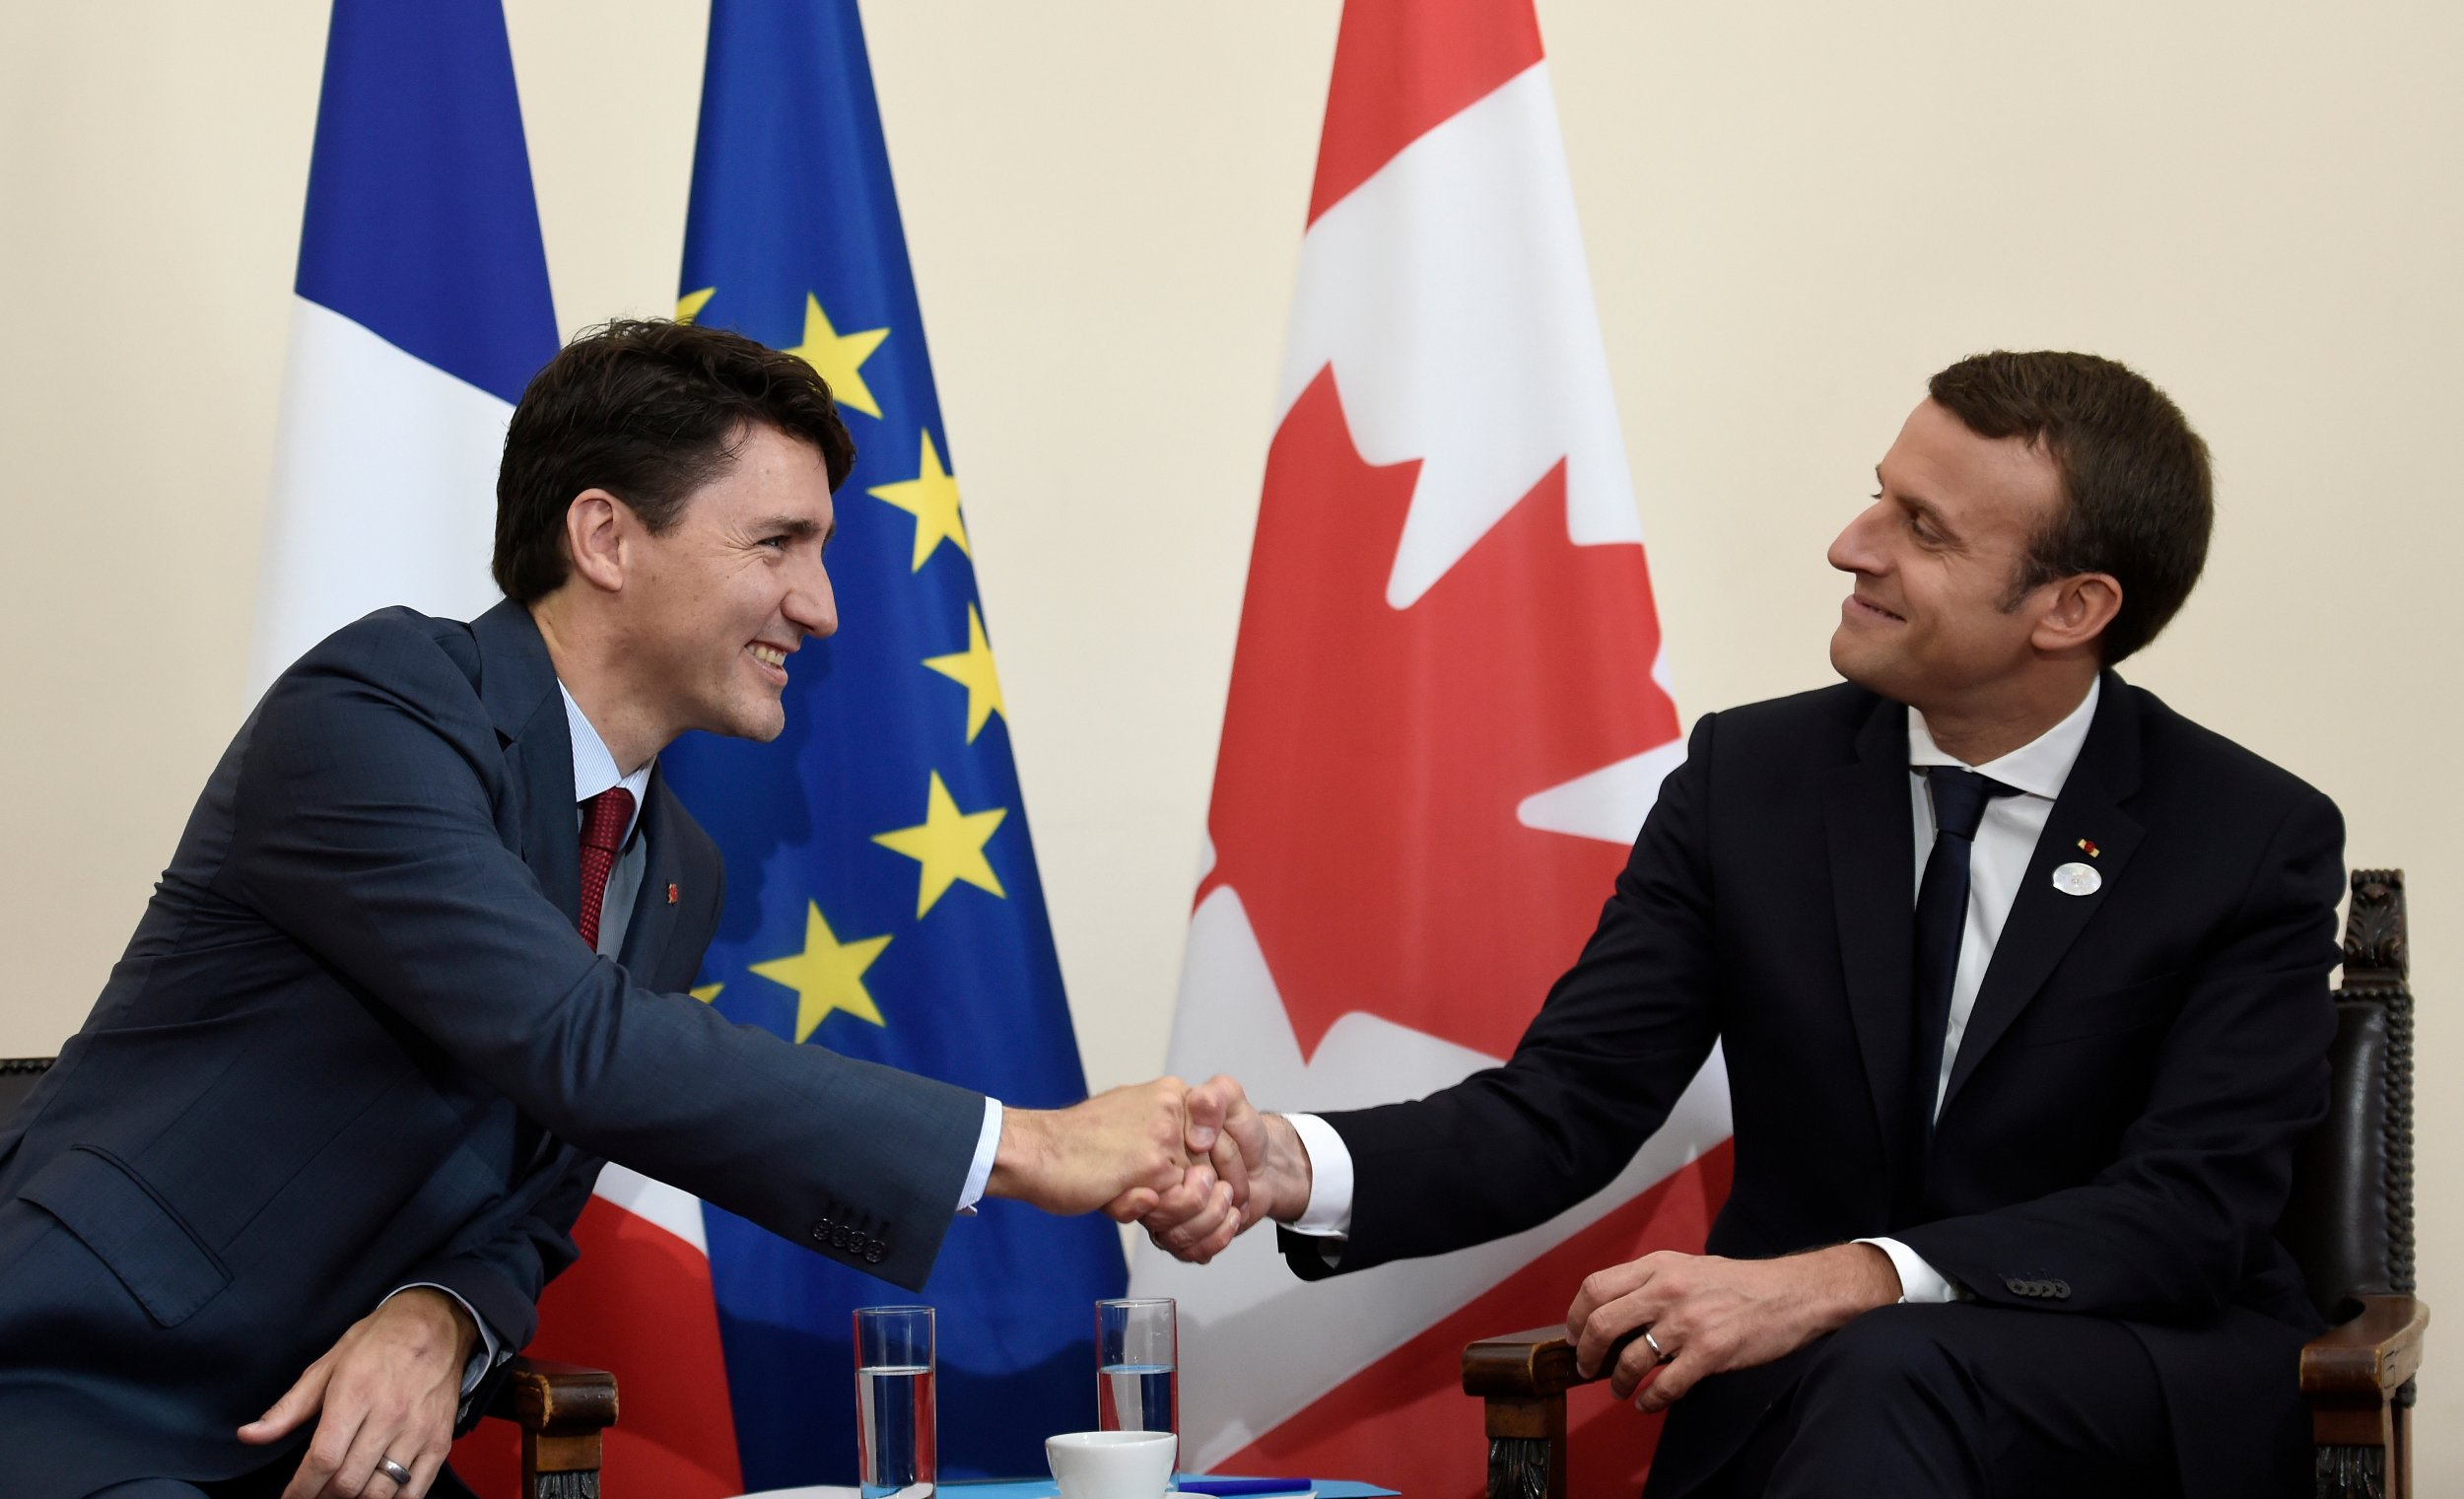 http://s.newsweek.com/sites/www.newsweek.com/files/styles/full/public/2017/05/26/trudeu-meets-macron-0.jpg